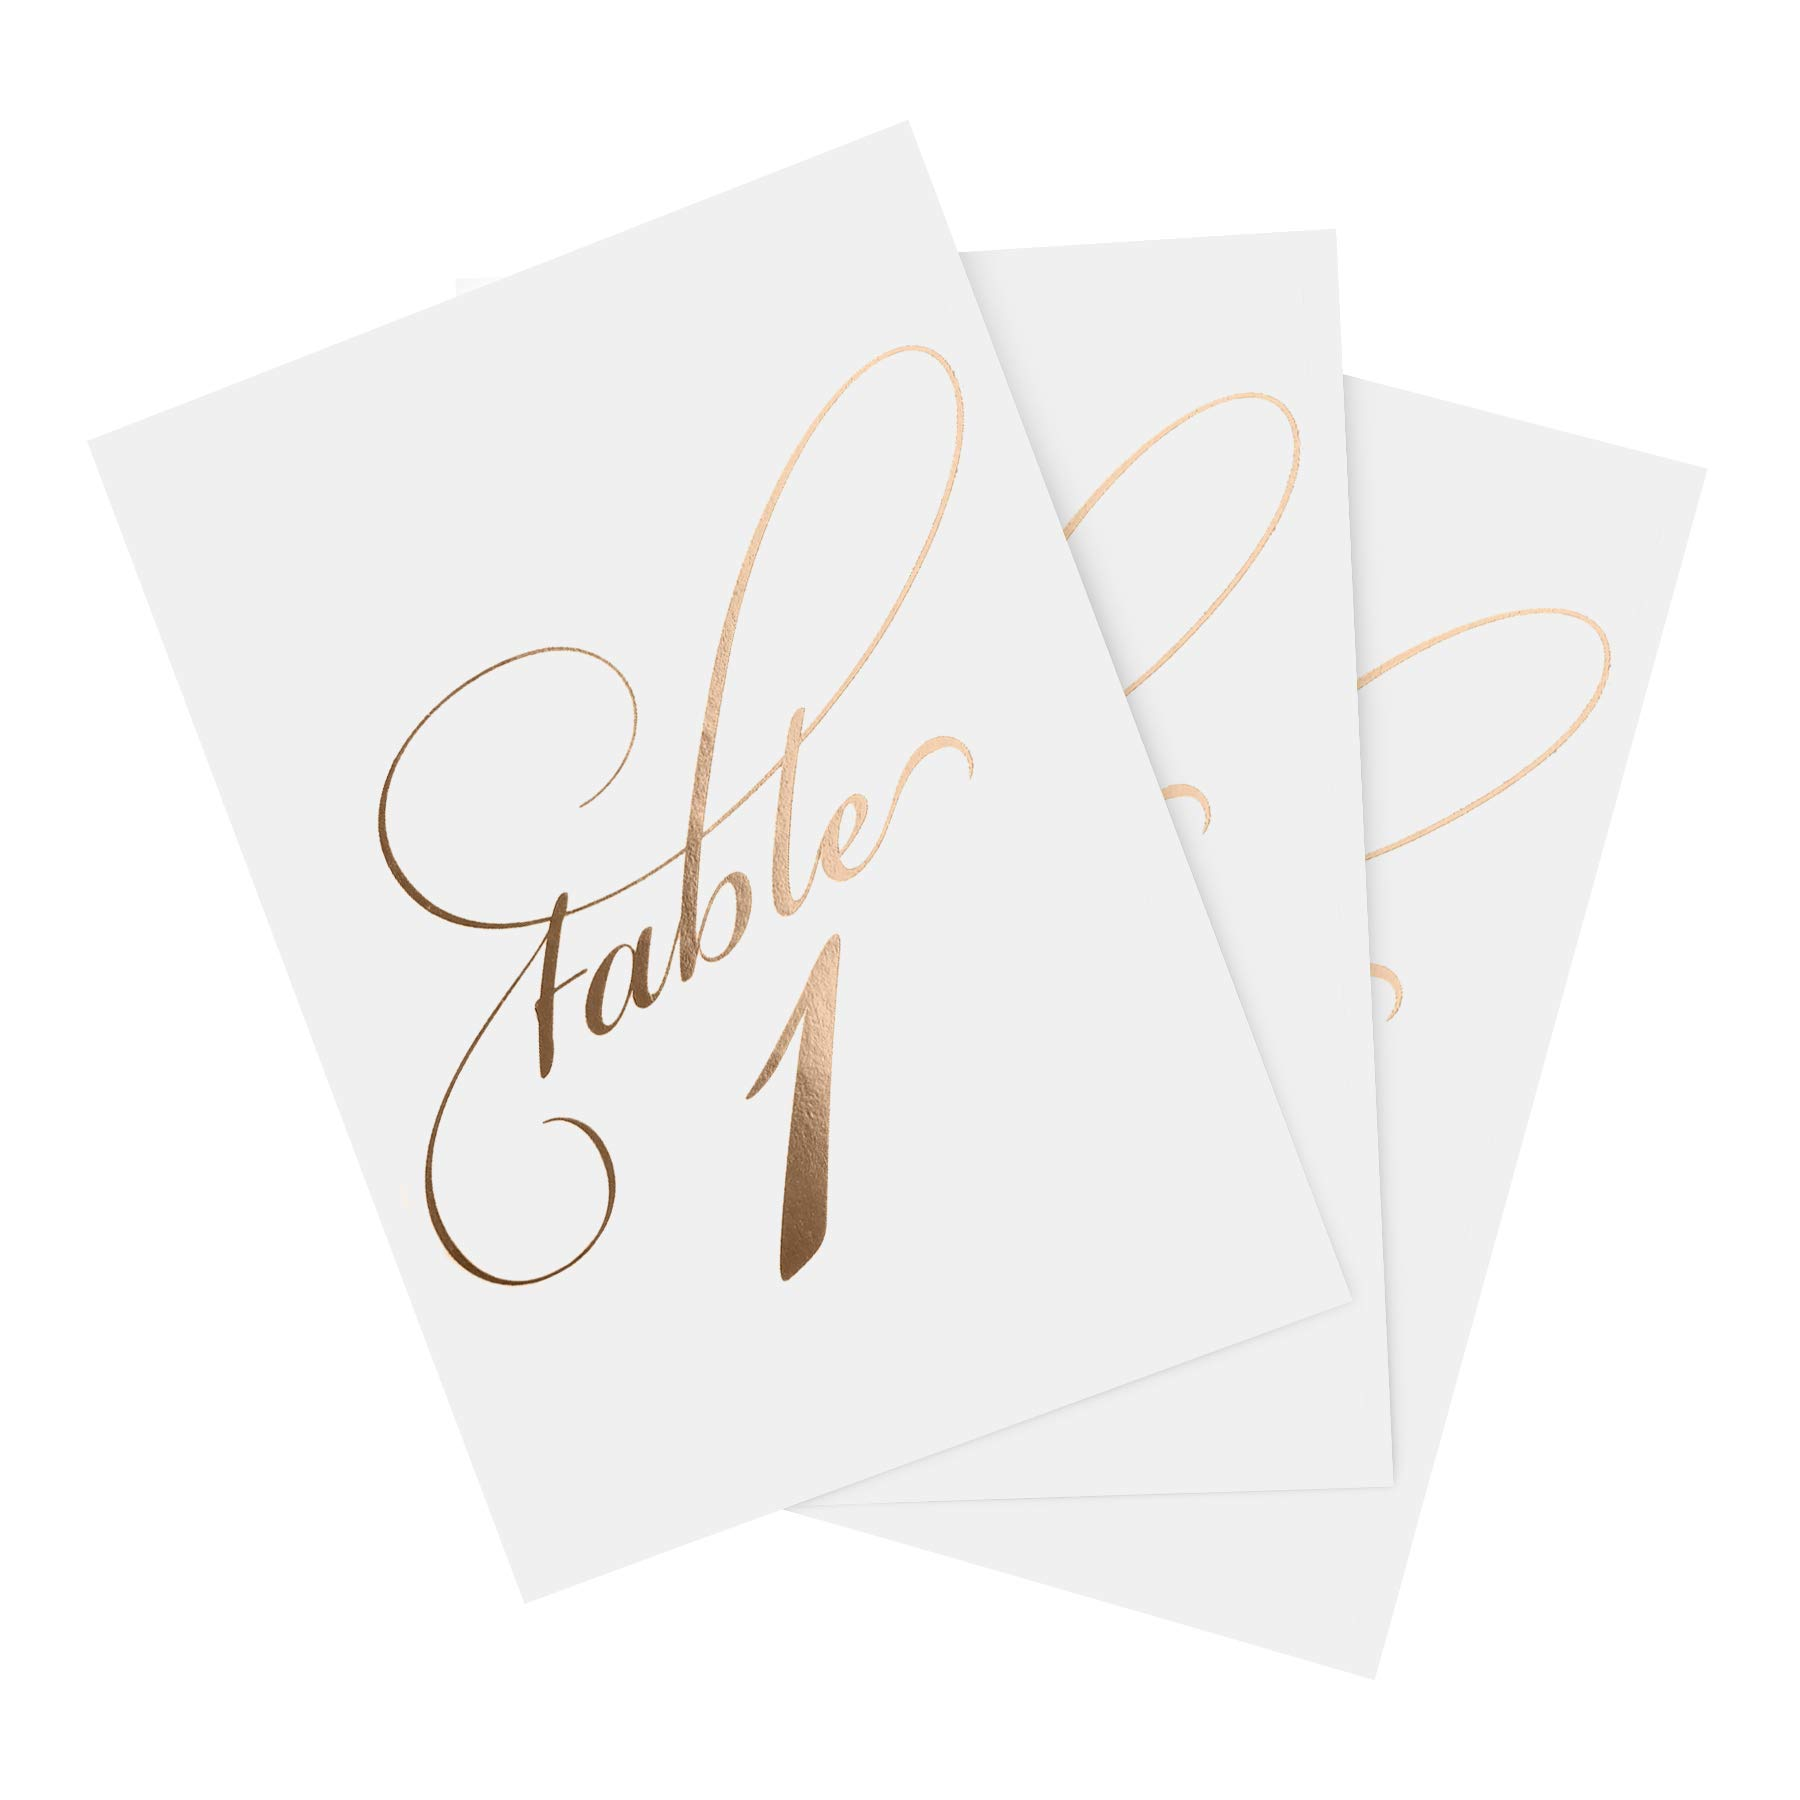 Bliss Collections Rose Gold Wedding Table Numbers, 1-40 and Head Table Card Included, Double Sided, 4x6, Calligraphy Design Made in the USA by Bliss Collections